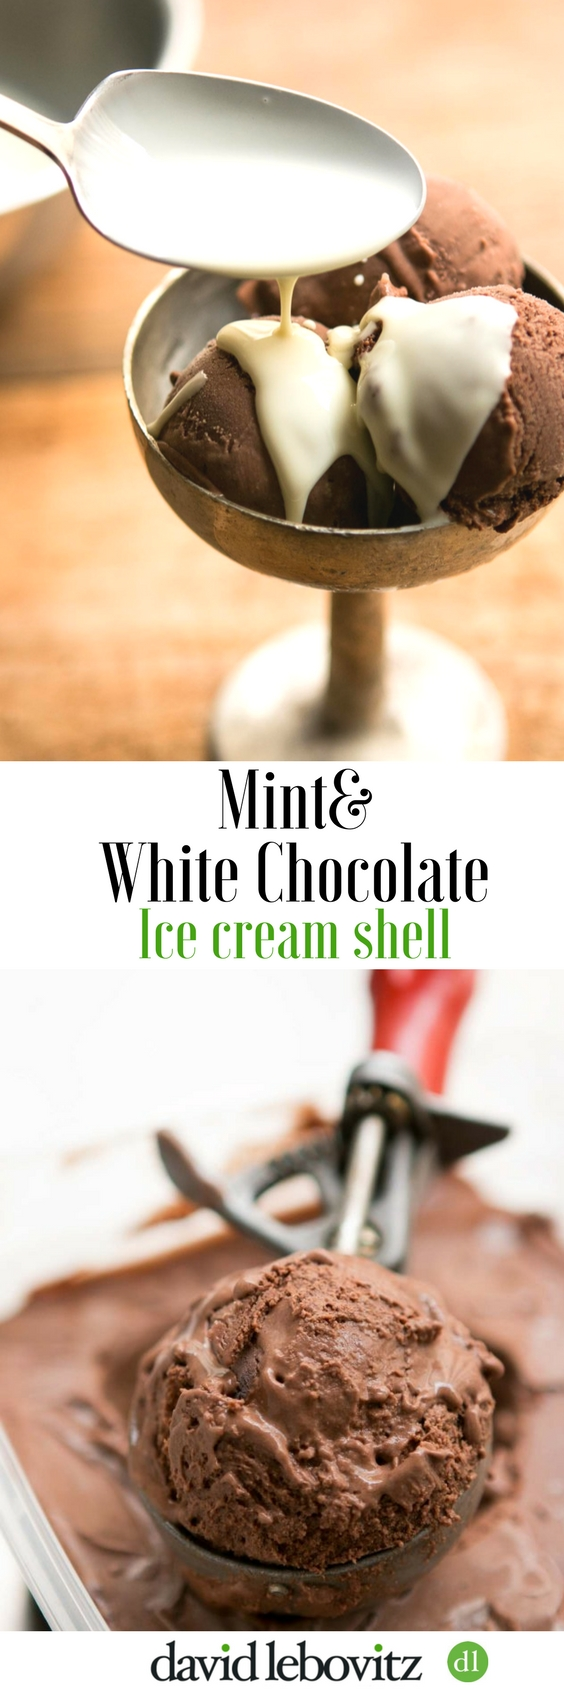 Mint-White Chocolate